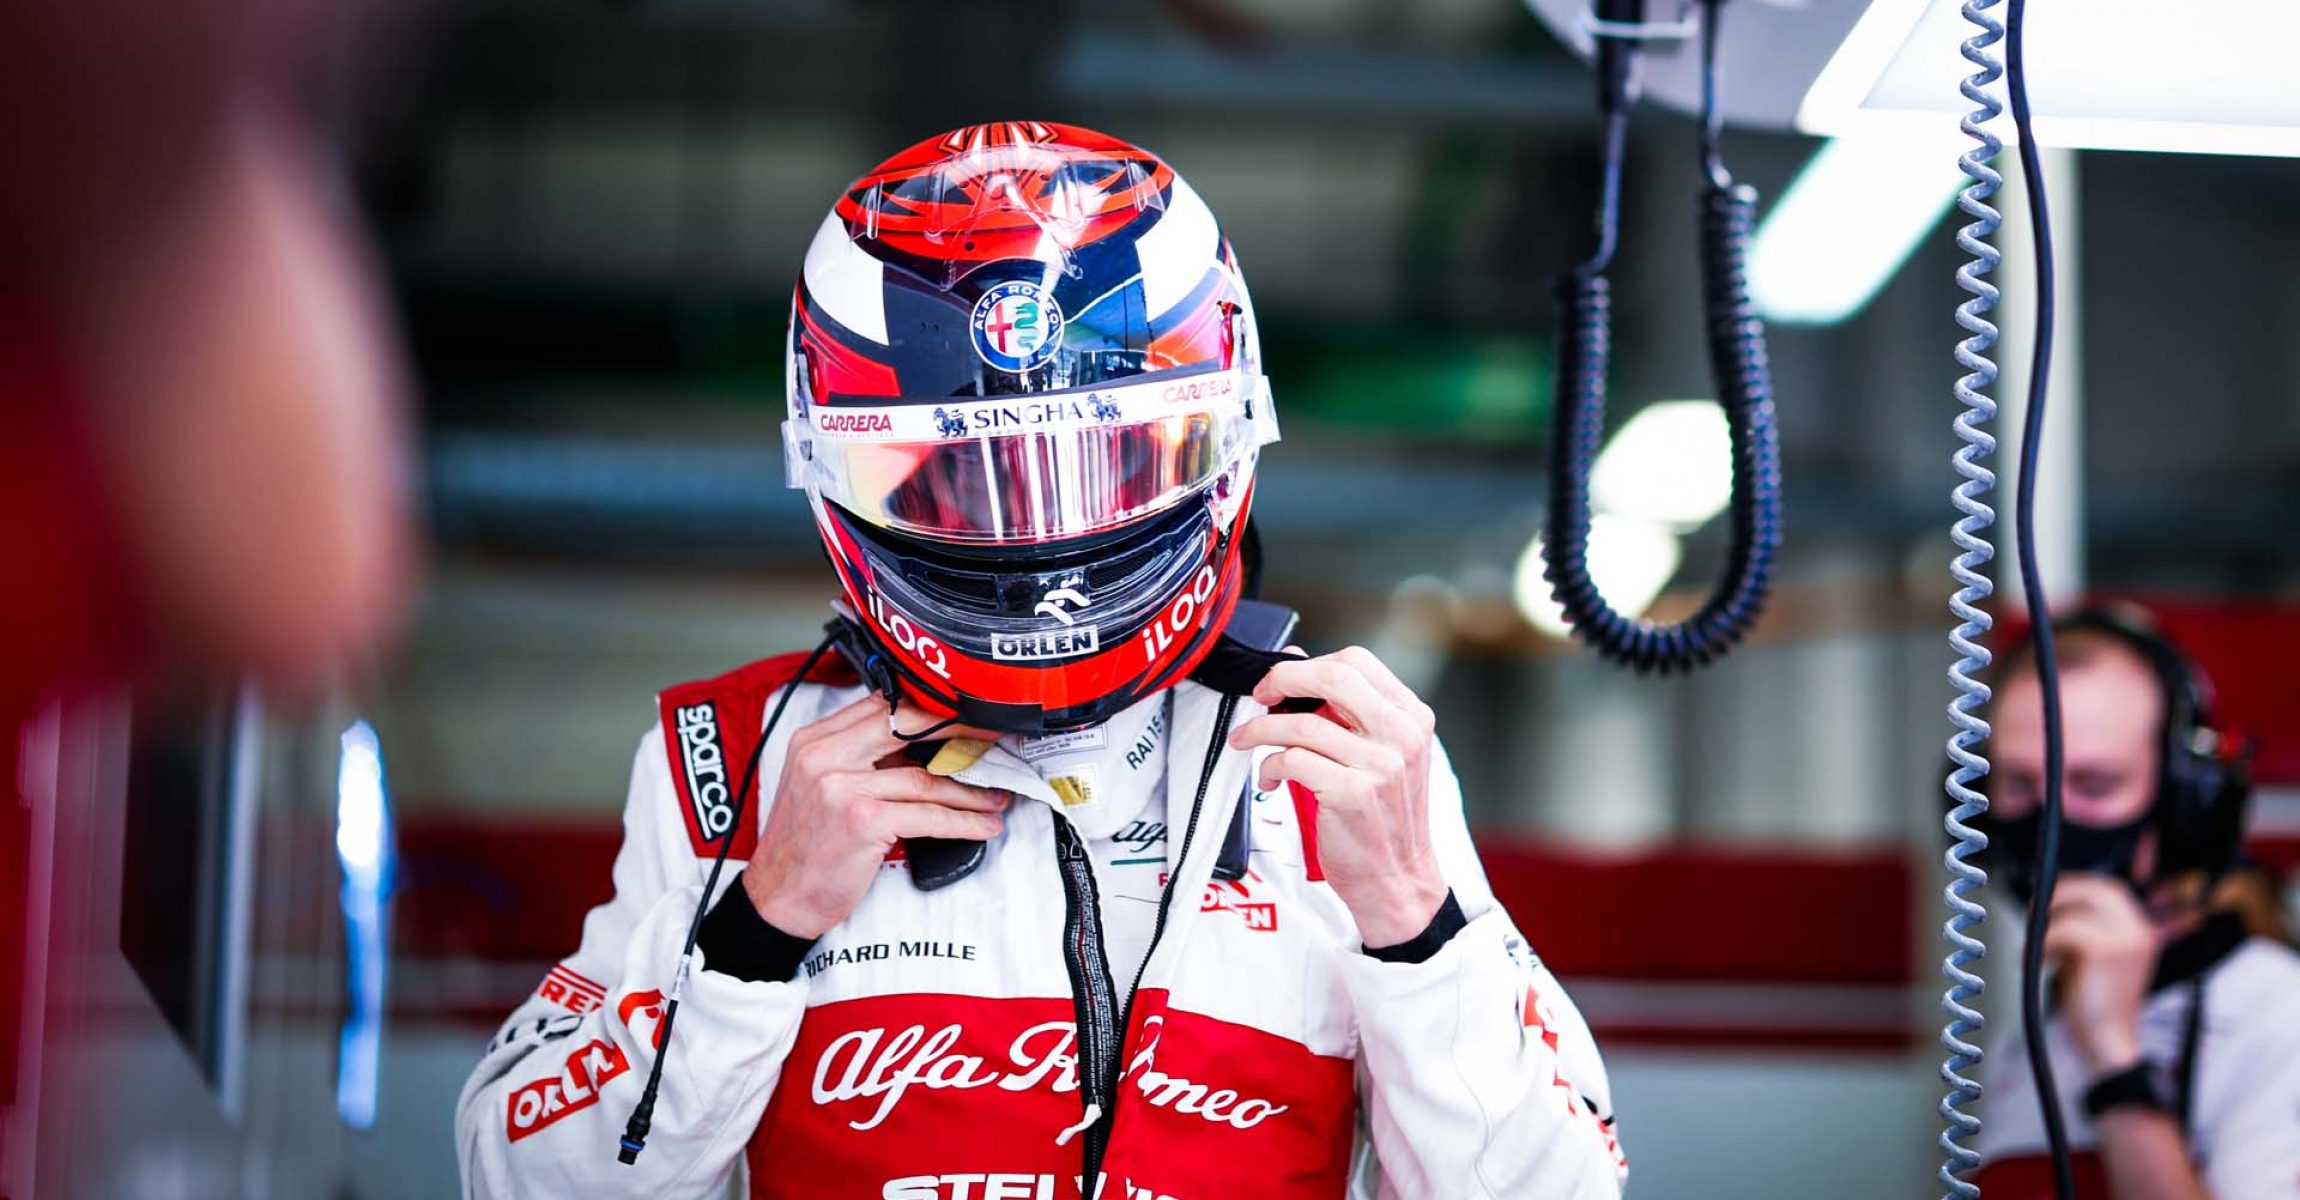 RAIKKONEN Kimi Räikkönen (fin), Alfa Romeo Racing ORLEN C39, portrait during the Formula 1 VTB Russian Grand Prix 2020, from September 25 to 27, 2020 on the Sochi Autodrom, in Sochi, Russia - Photo Antonin Vincent / DPPI